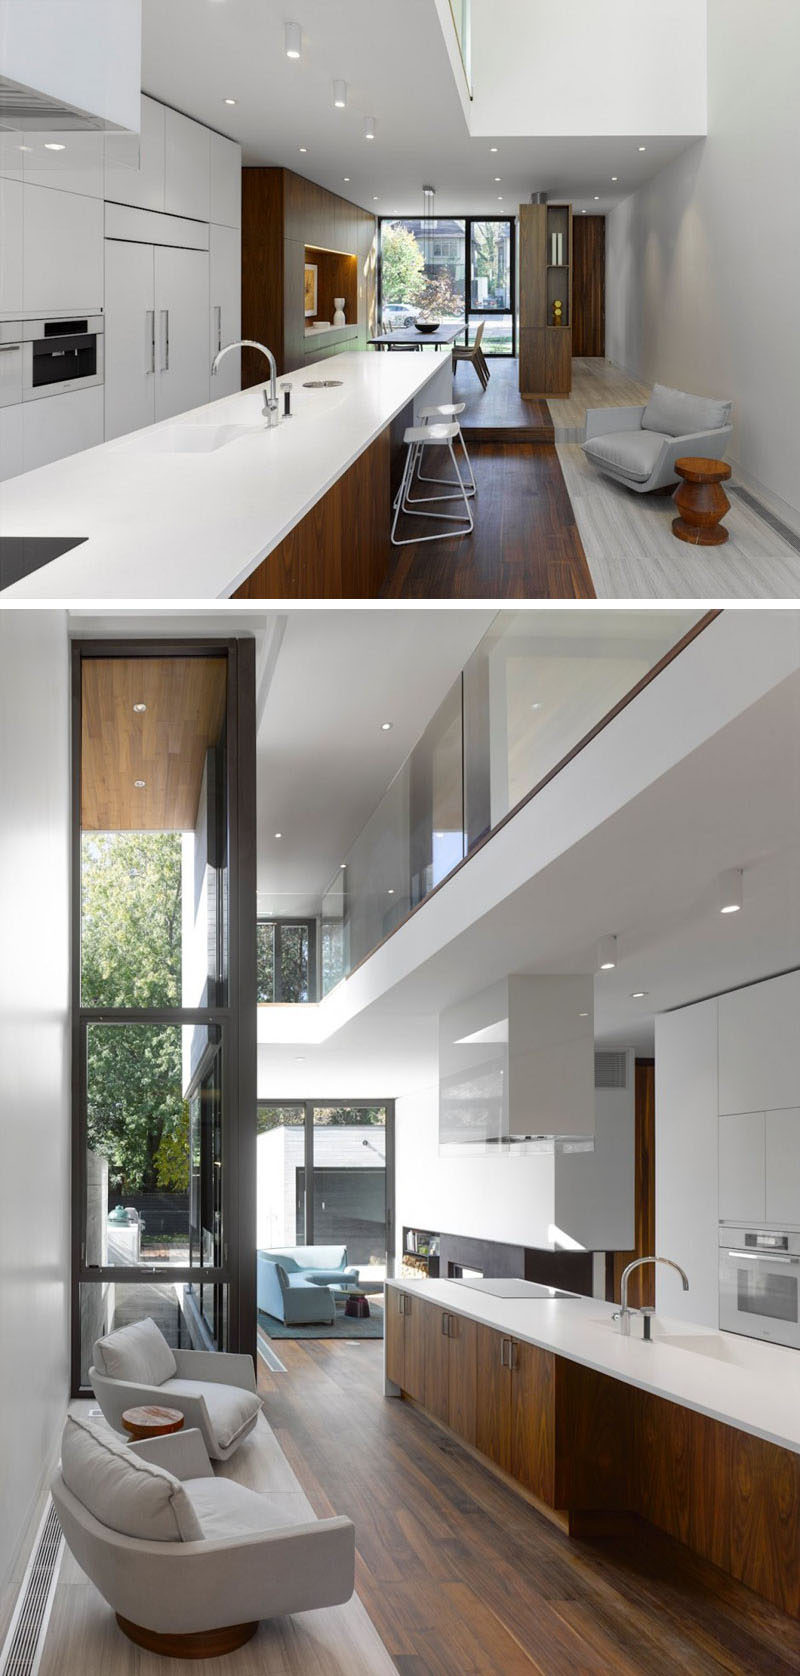 The layout of the main floor of this modern house has the dining room looking out onto the street, while the kitchen with its white minimalist cabinets, leads to the living room at the rear of the house. #ModernInteriorDesign #KitchenDesign